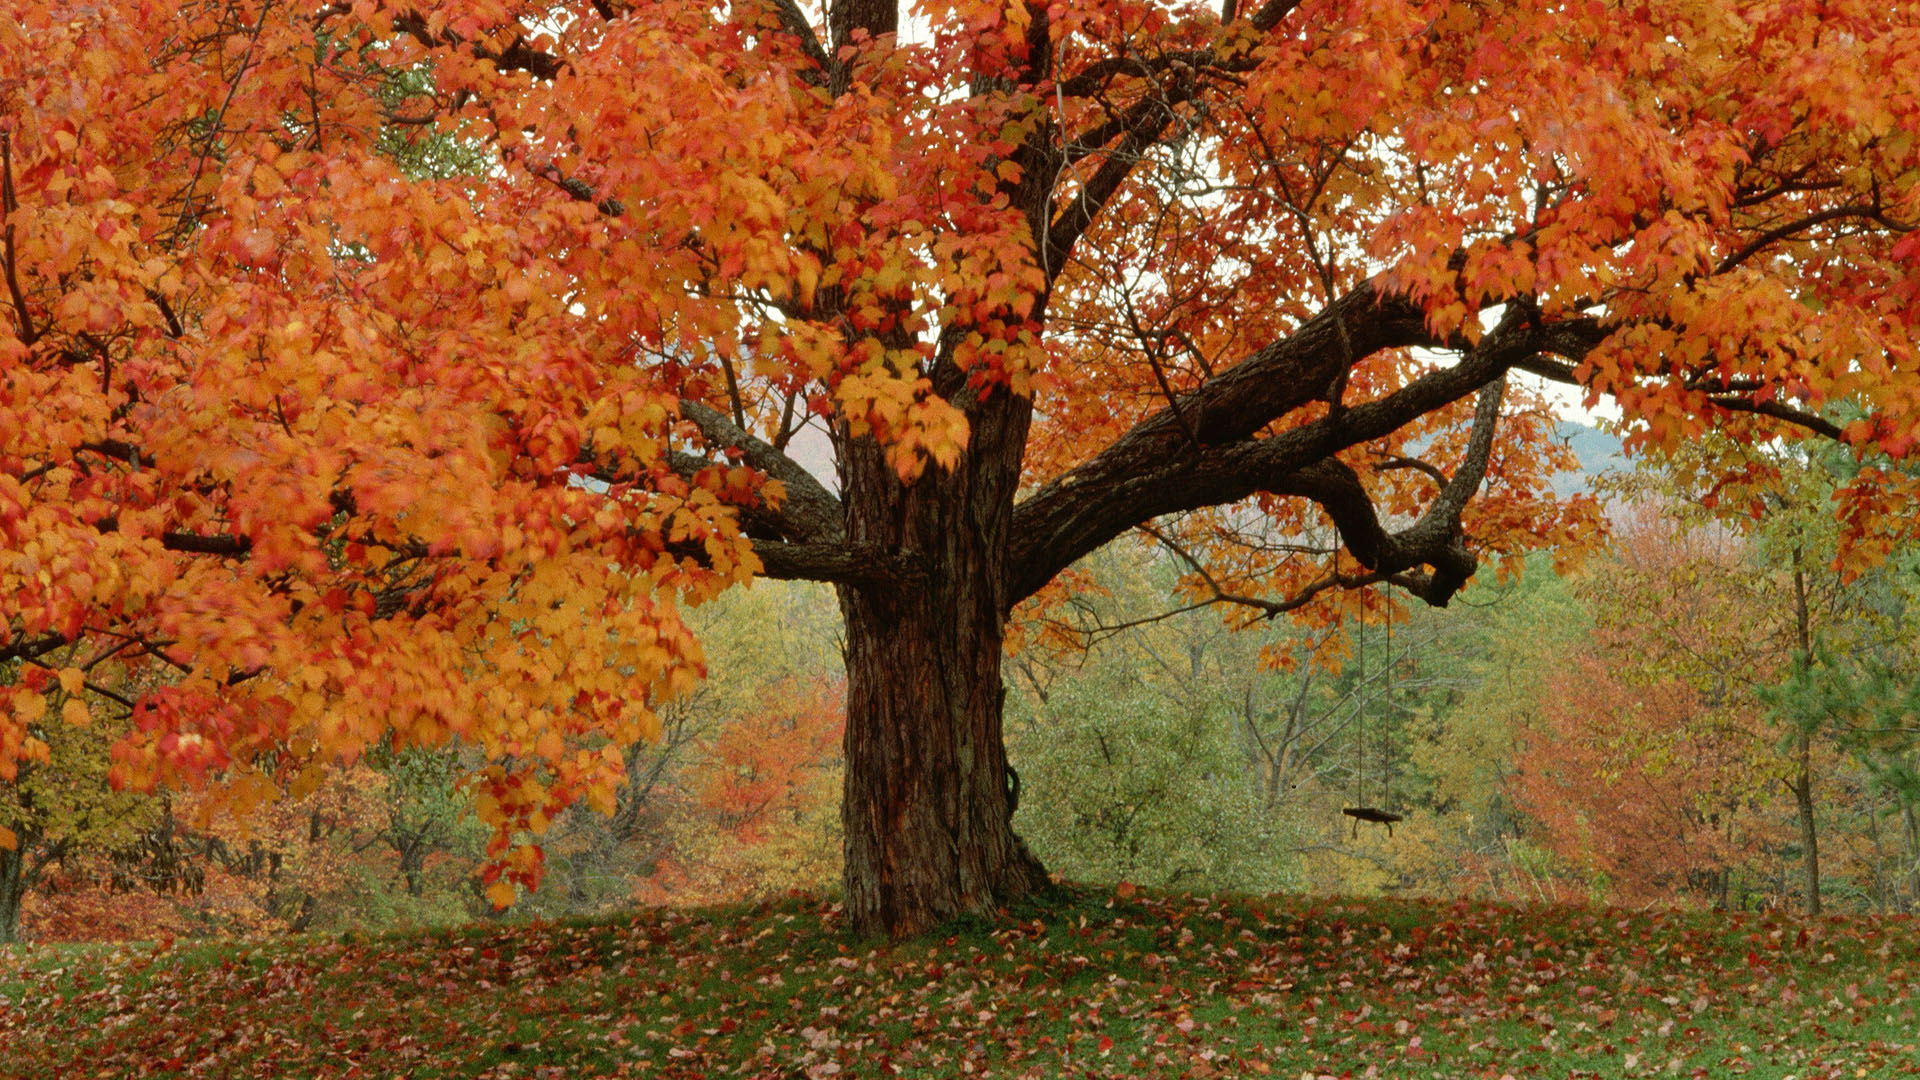 Autumn Tree Wallpaper 61 Images: Cute Fall Wallpaper Backgrounds